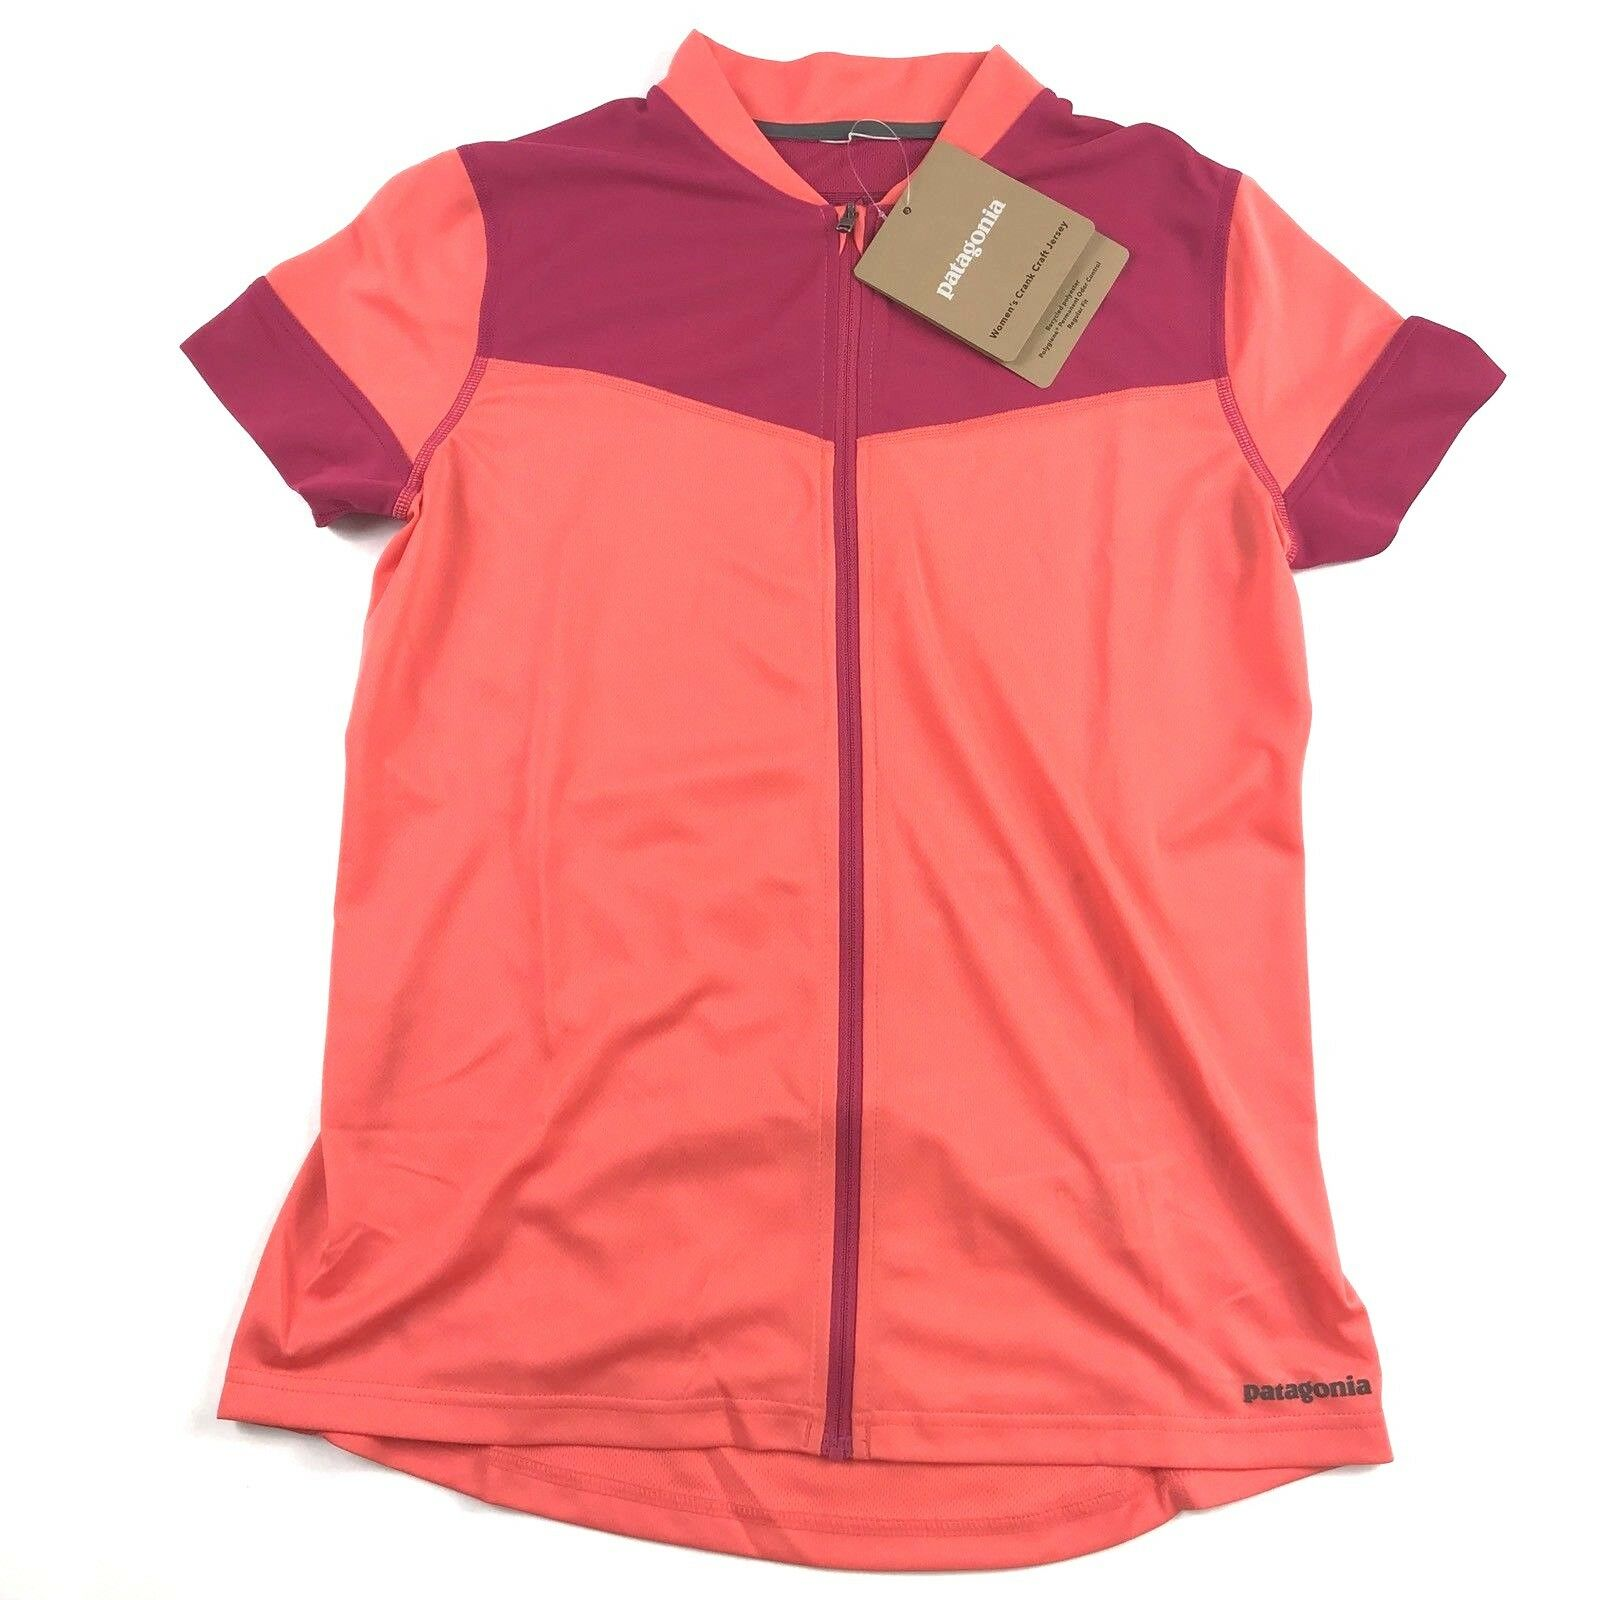 New Patagonia Womens Crank Craft Jersey Sz Small Full Zip Carve Coral Cycling